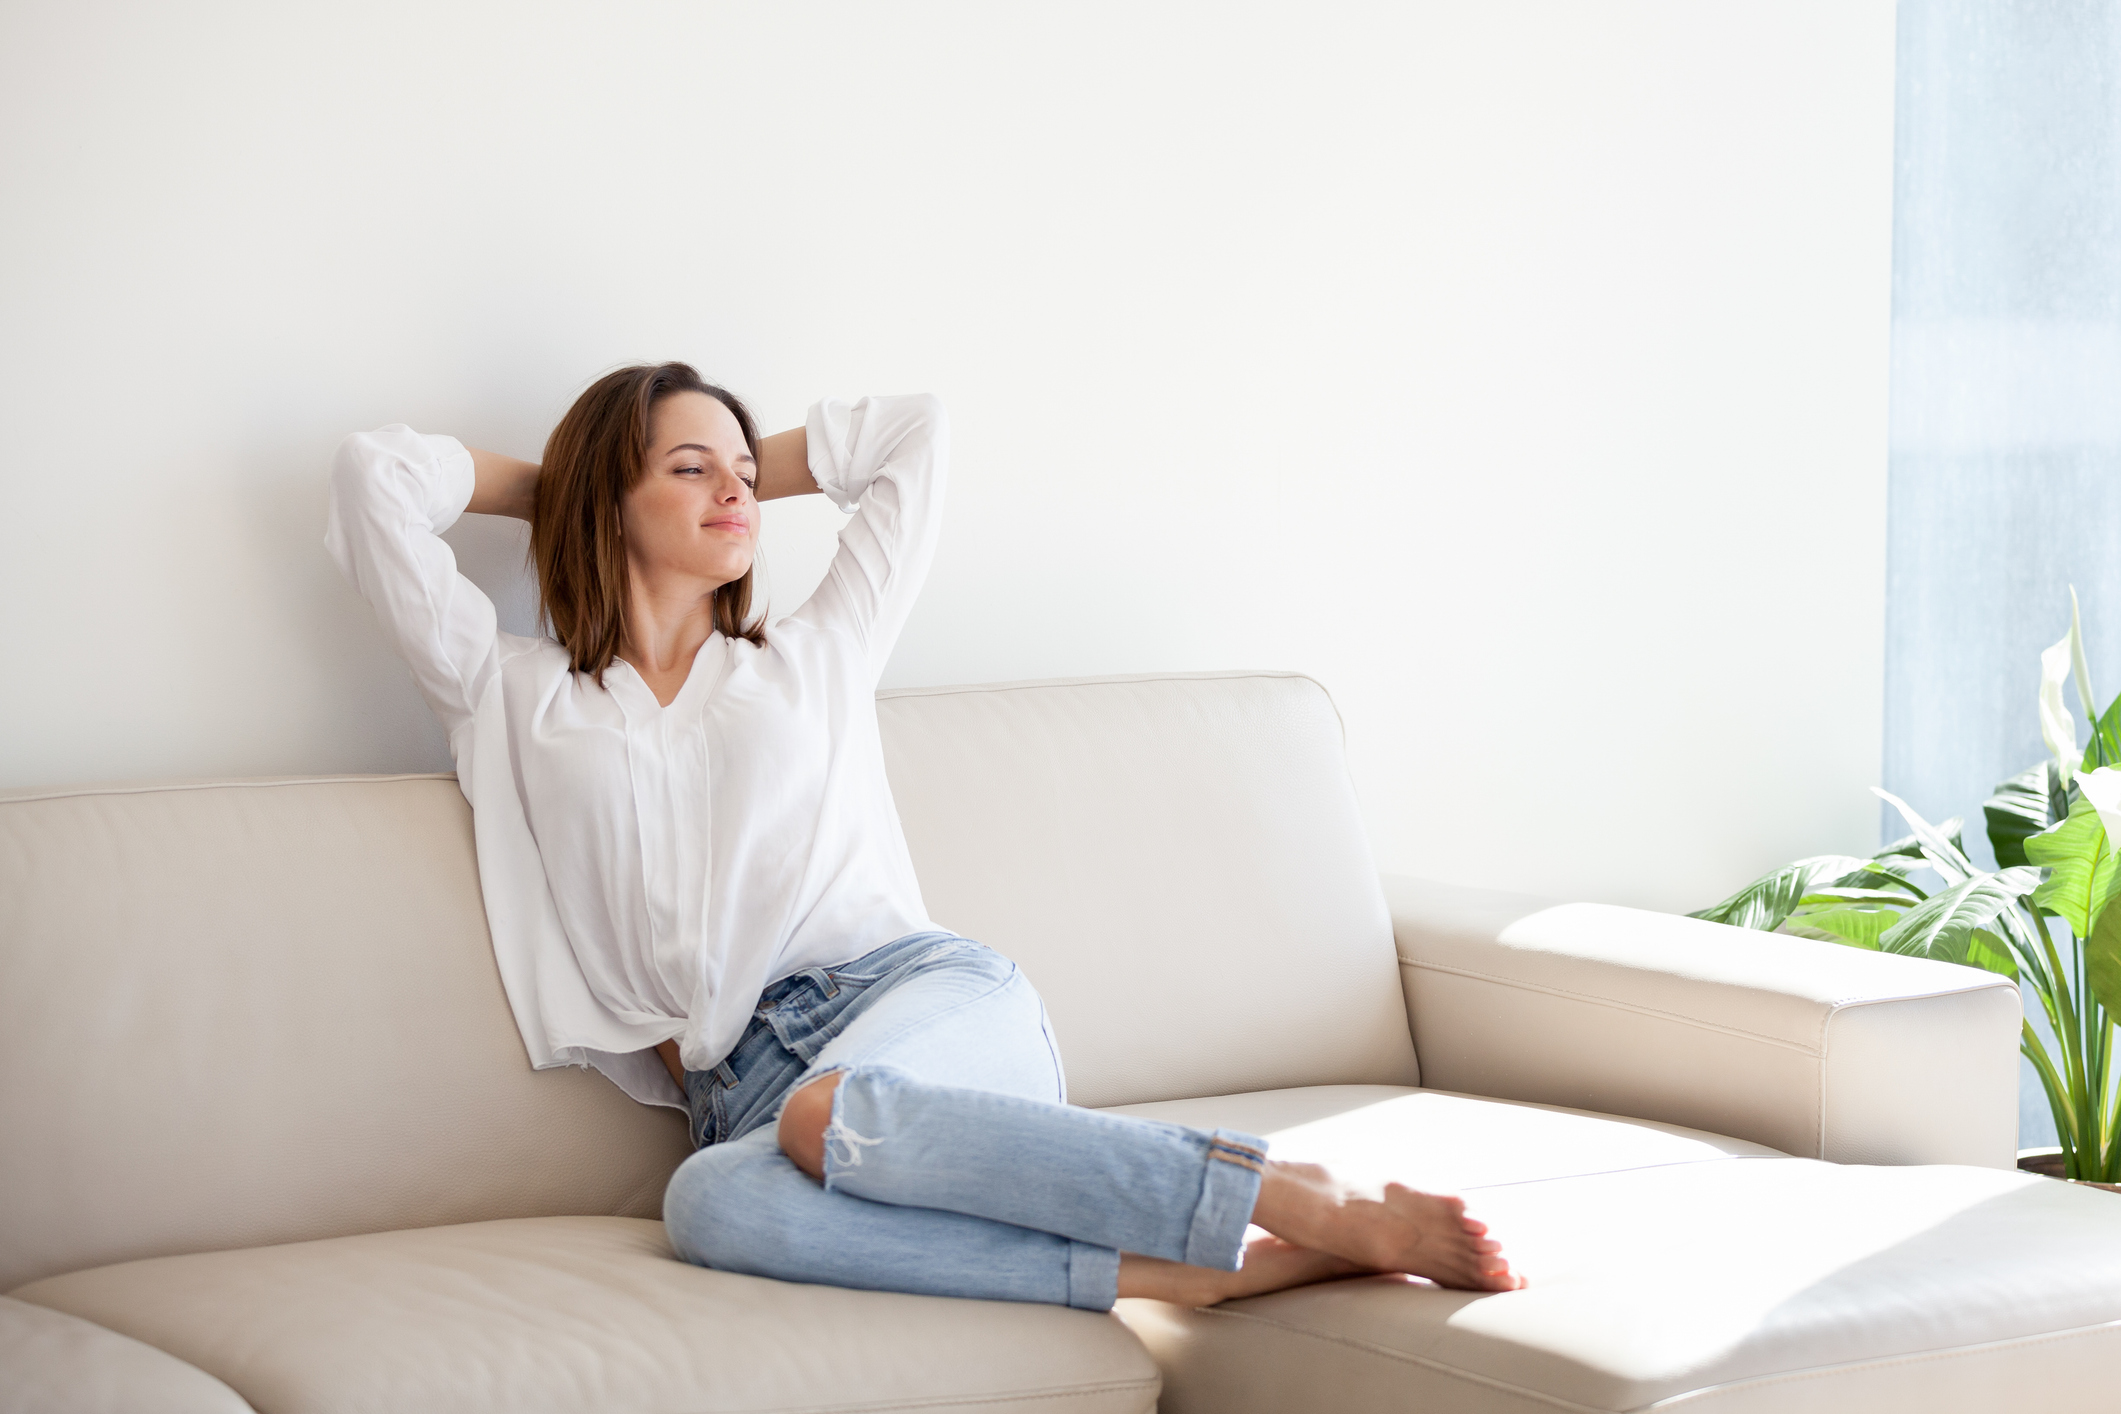 A relaxed woman sitting on her couch with her hands behind her head.